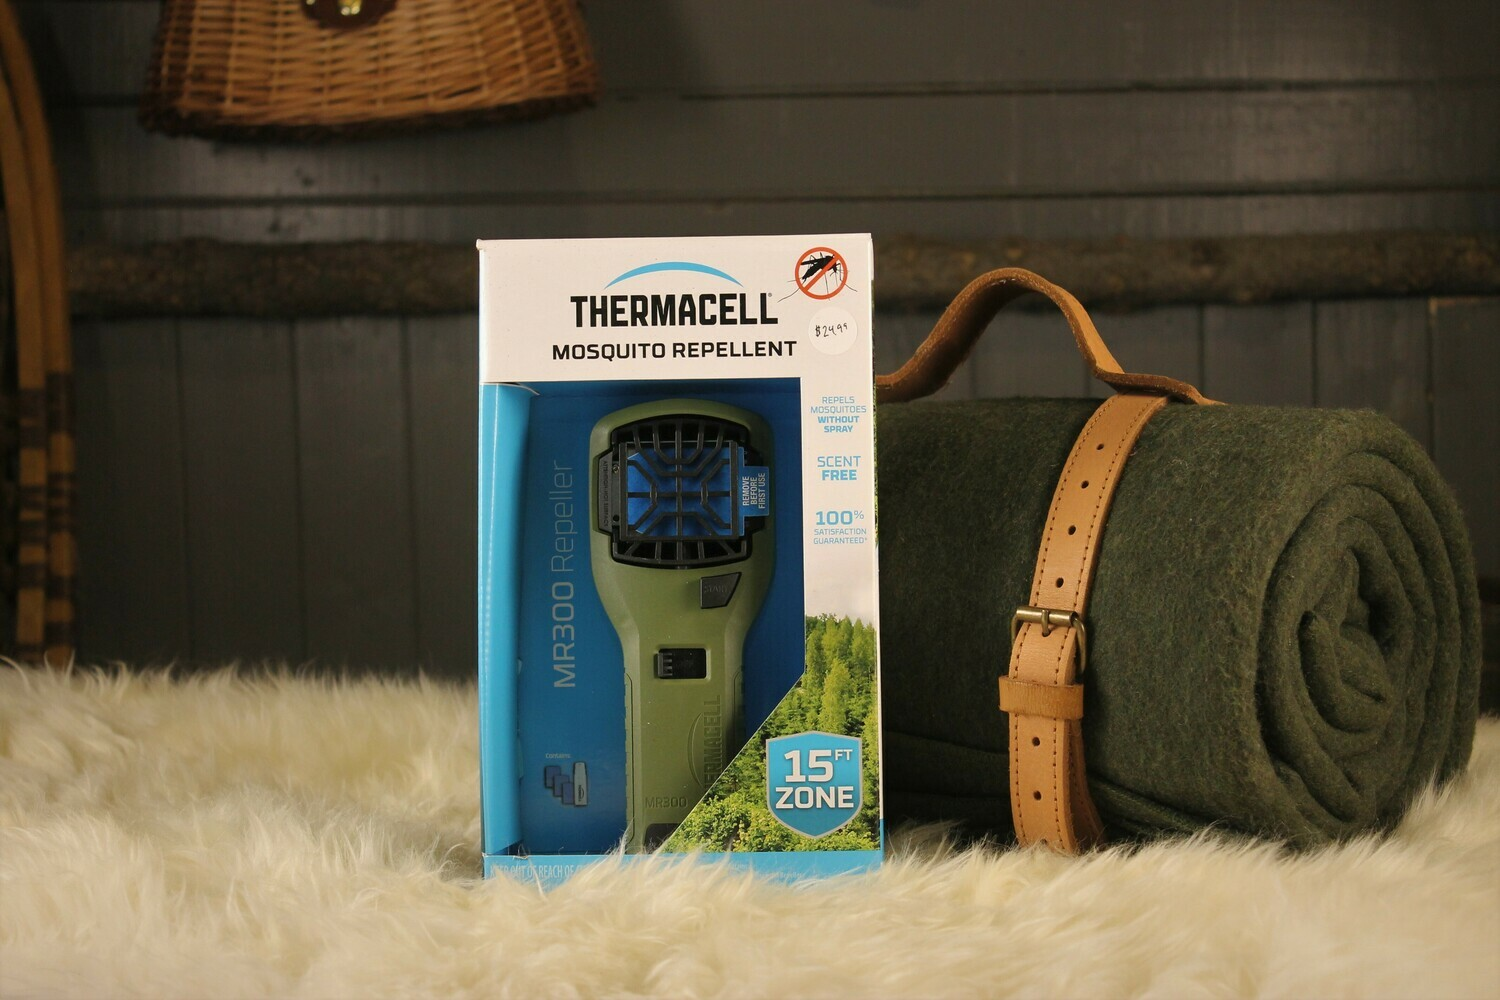 MR300 Portable Thermacell Mosquito Repellent